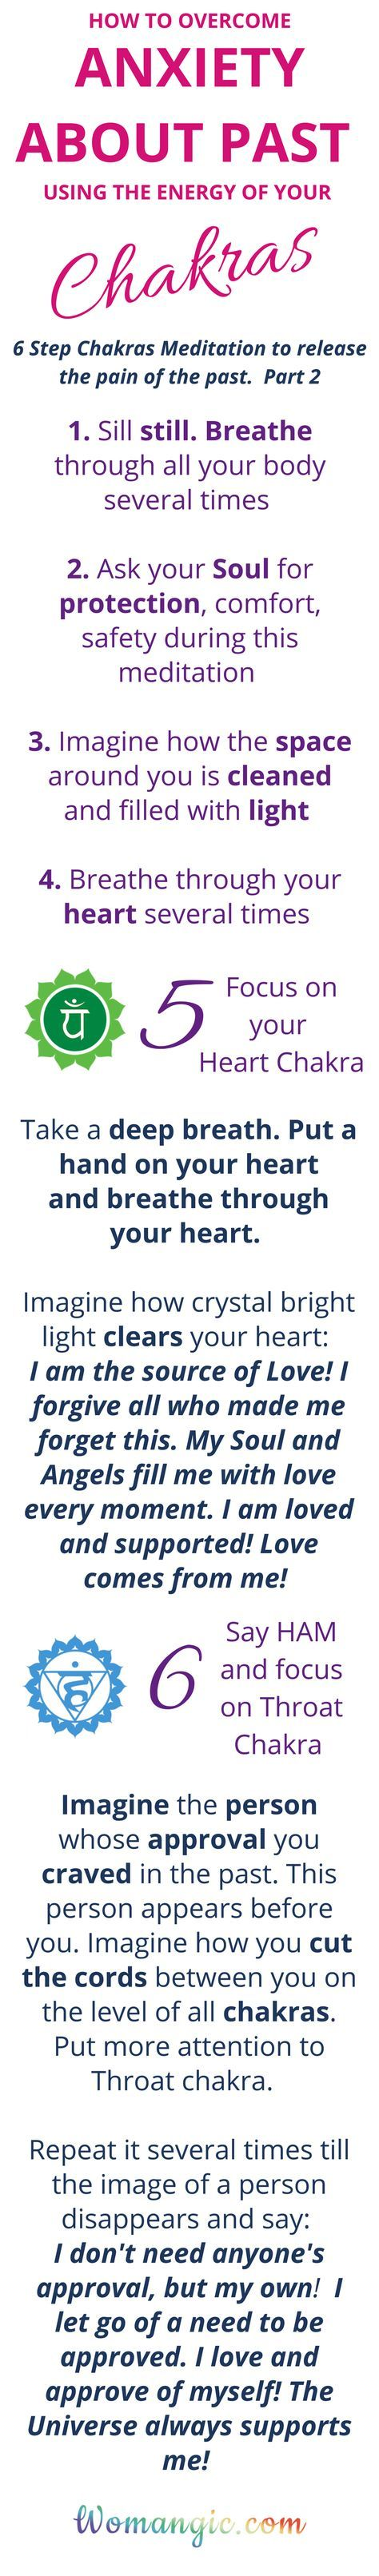 Letting Go, Past, Meditation, Chakra Meditation, Chakra, Chakra Balancing, Root, Sacral, Solar Plexus, Heart, Throat, Third Eye, Crown, Chakra meaning, Chakra affirmation, Chakra Mantra, Chakra Energy, Energy, Chakra articles, Chakra Healing, Chakra Clean http://www.loapowers.com/which-type-of-thinker-are-you/